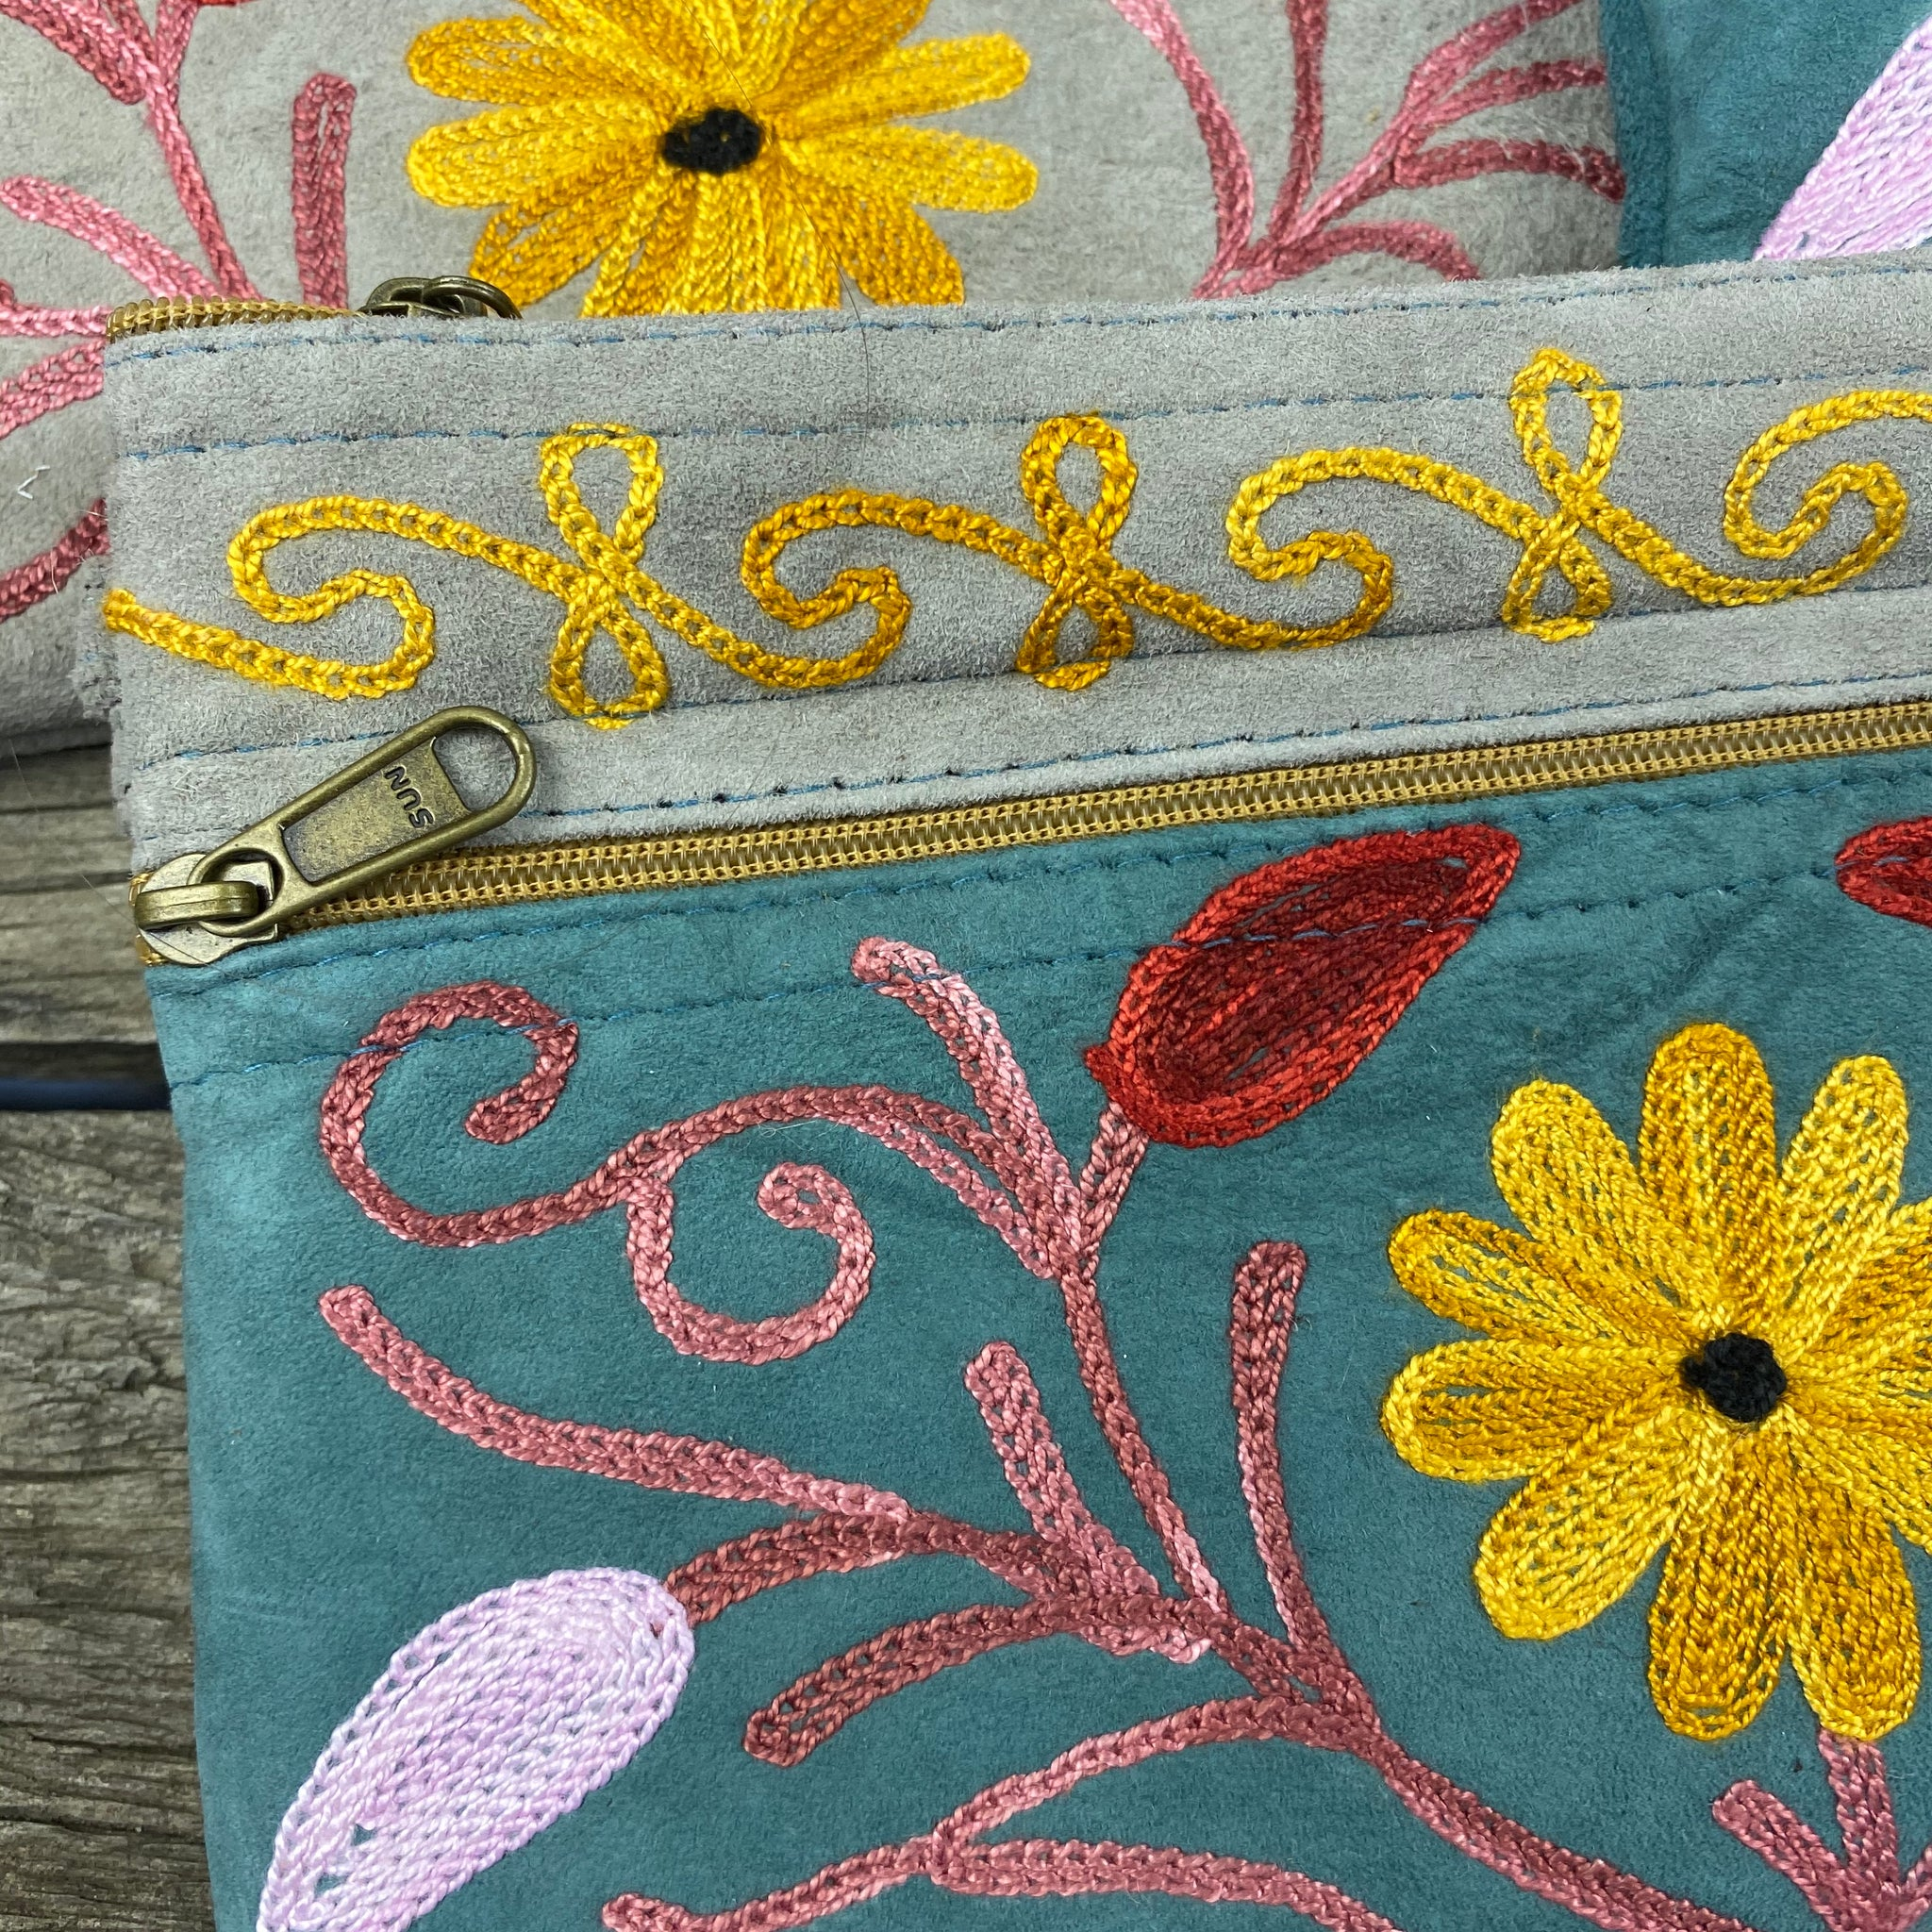 Fair Trade Ethical Embroidered Suede Three Zipper Purse Daisy Green and Grey -Assorted